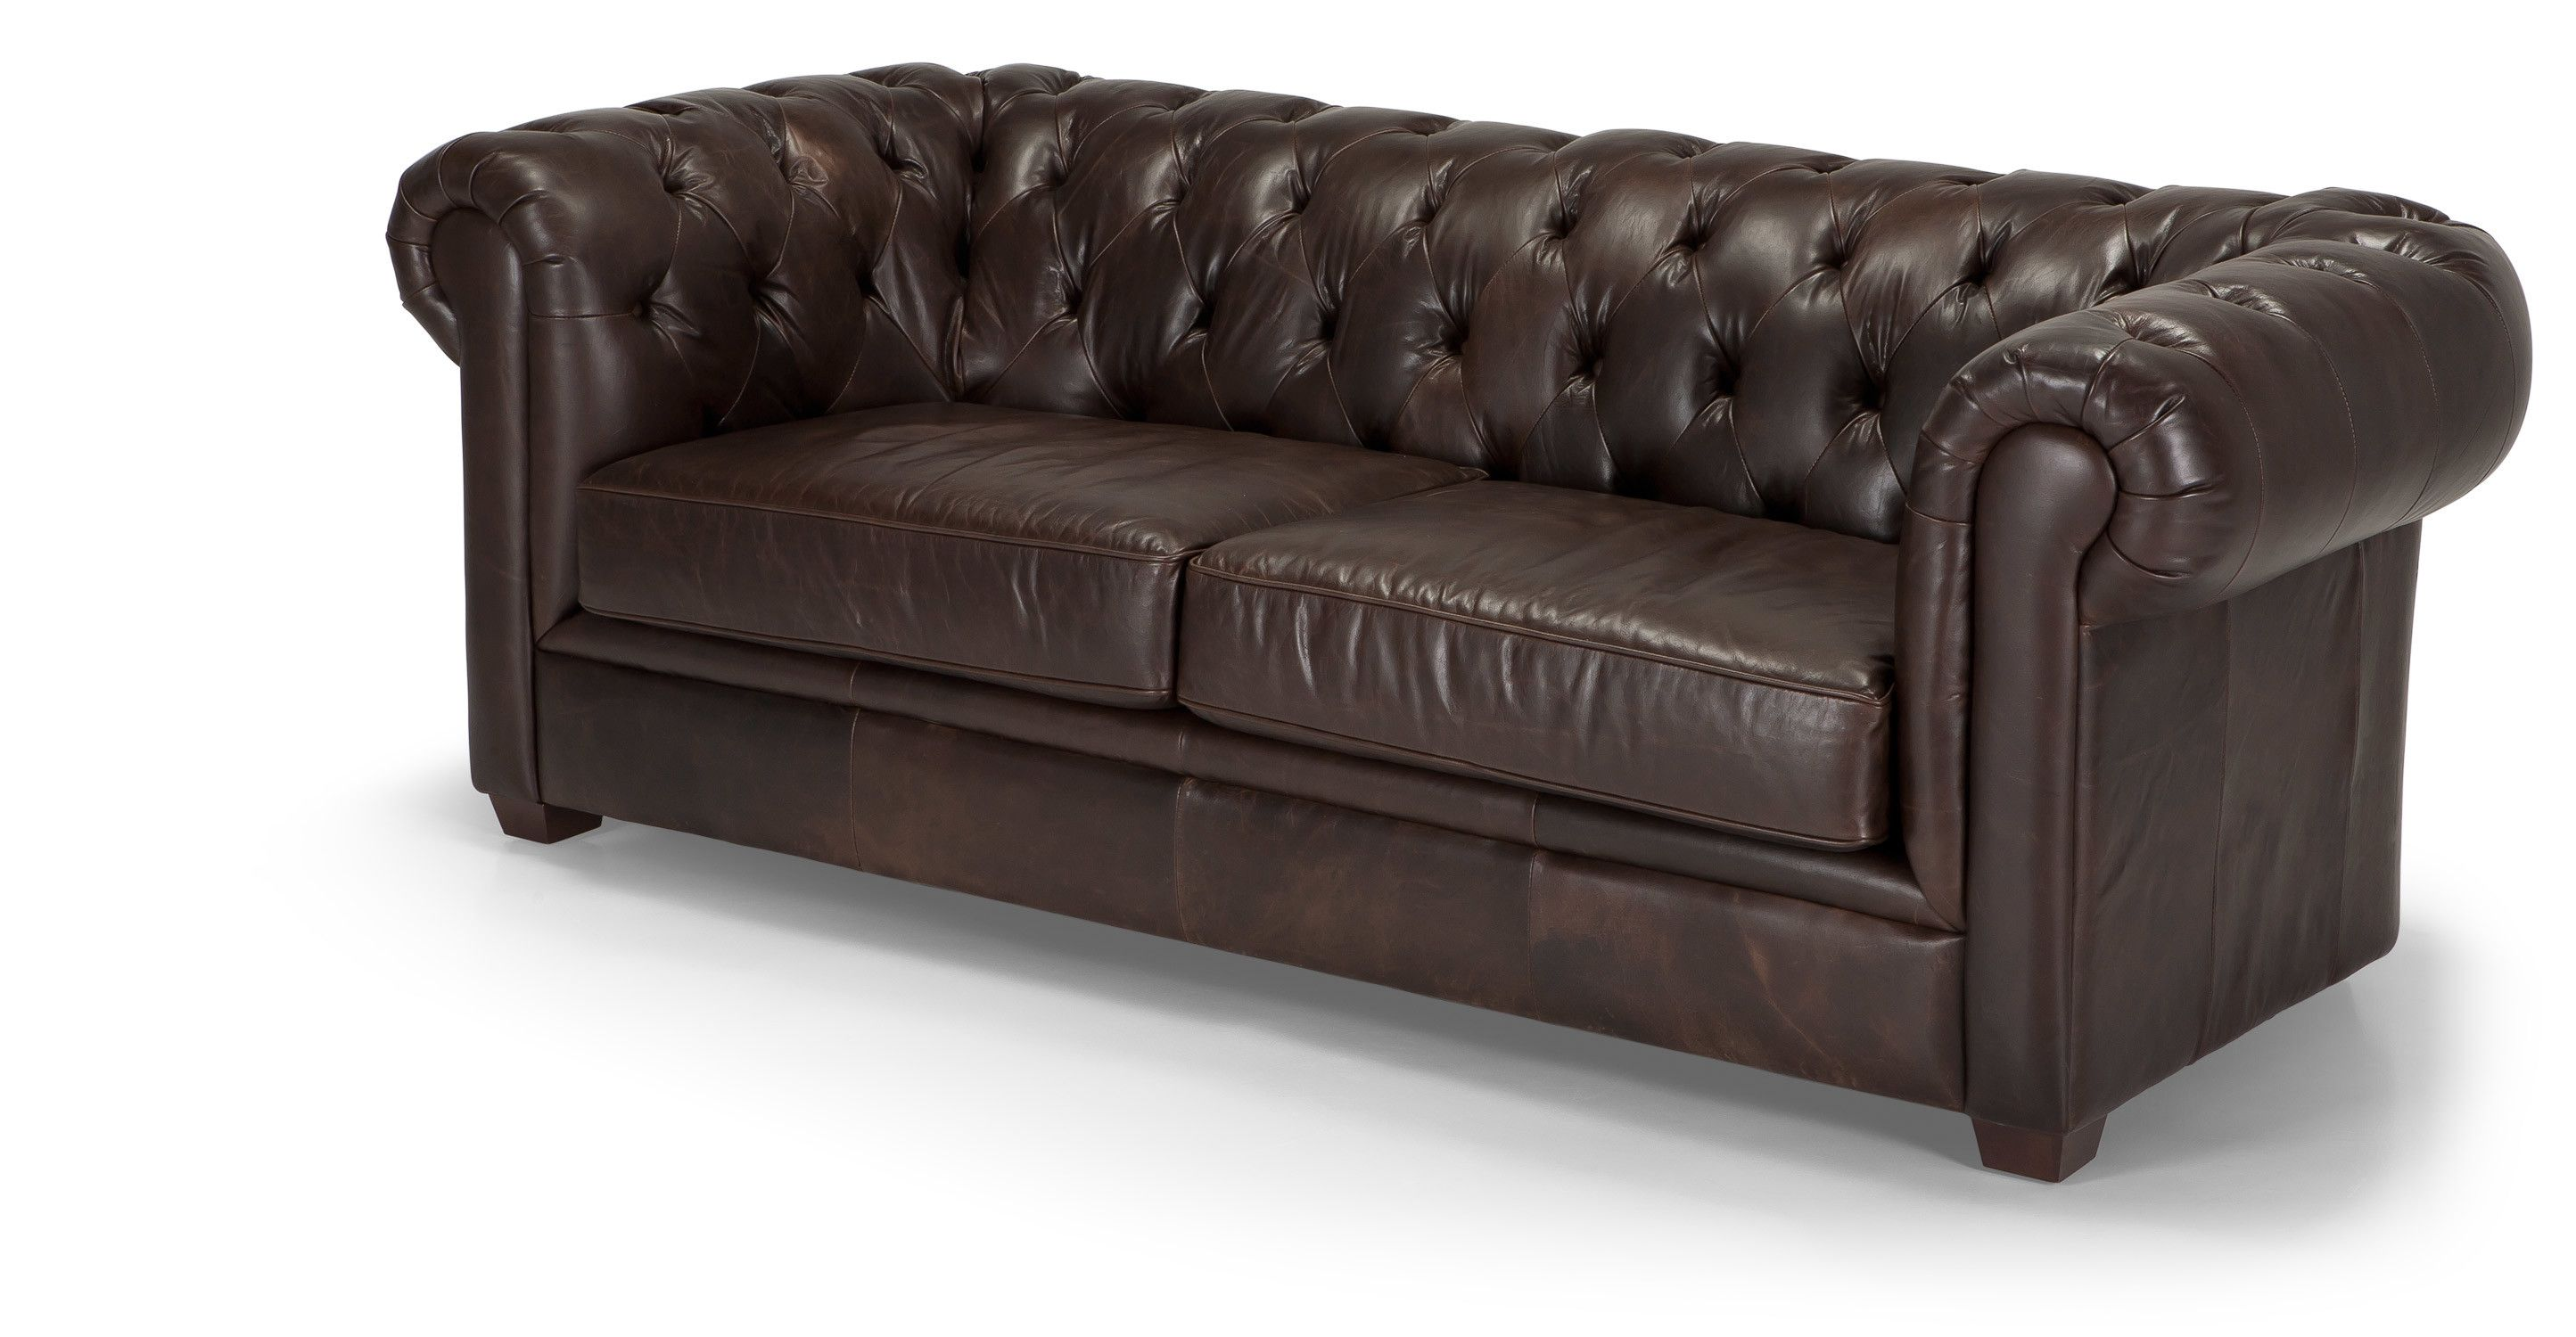 Seater queen anne high back wing sofa uk manufactured antique green - Mayson Chesterfield 3 Seater Sofa In Antique Brown Premium Leather Is A High Impact Addition